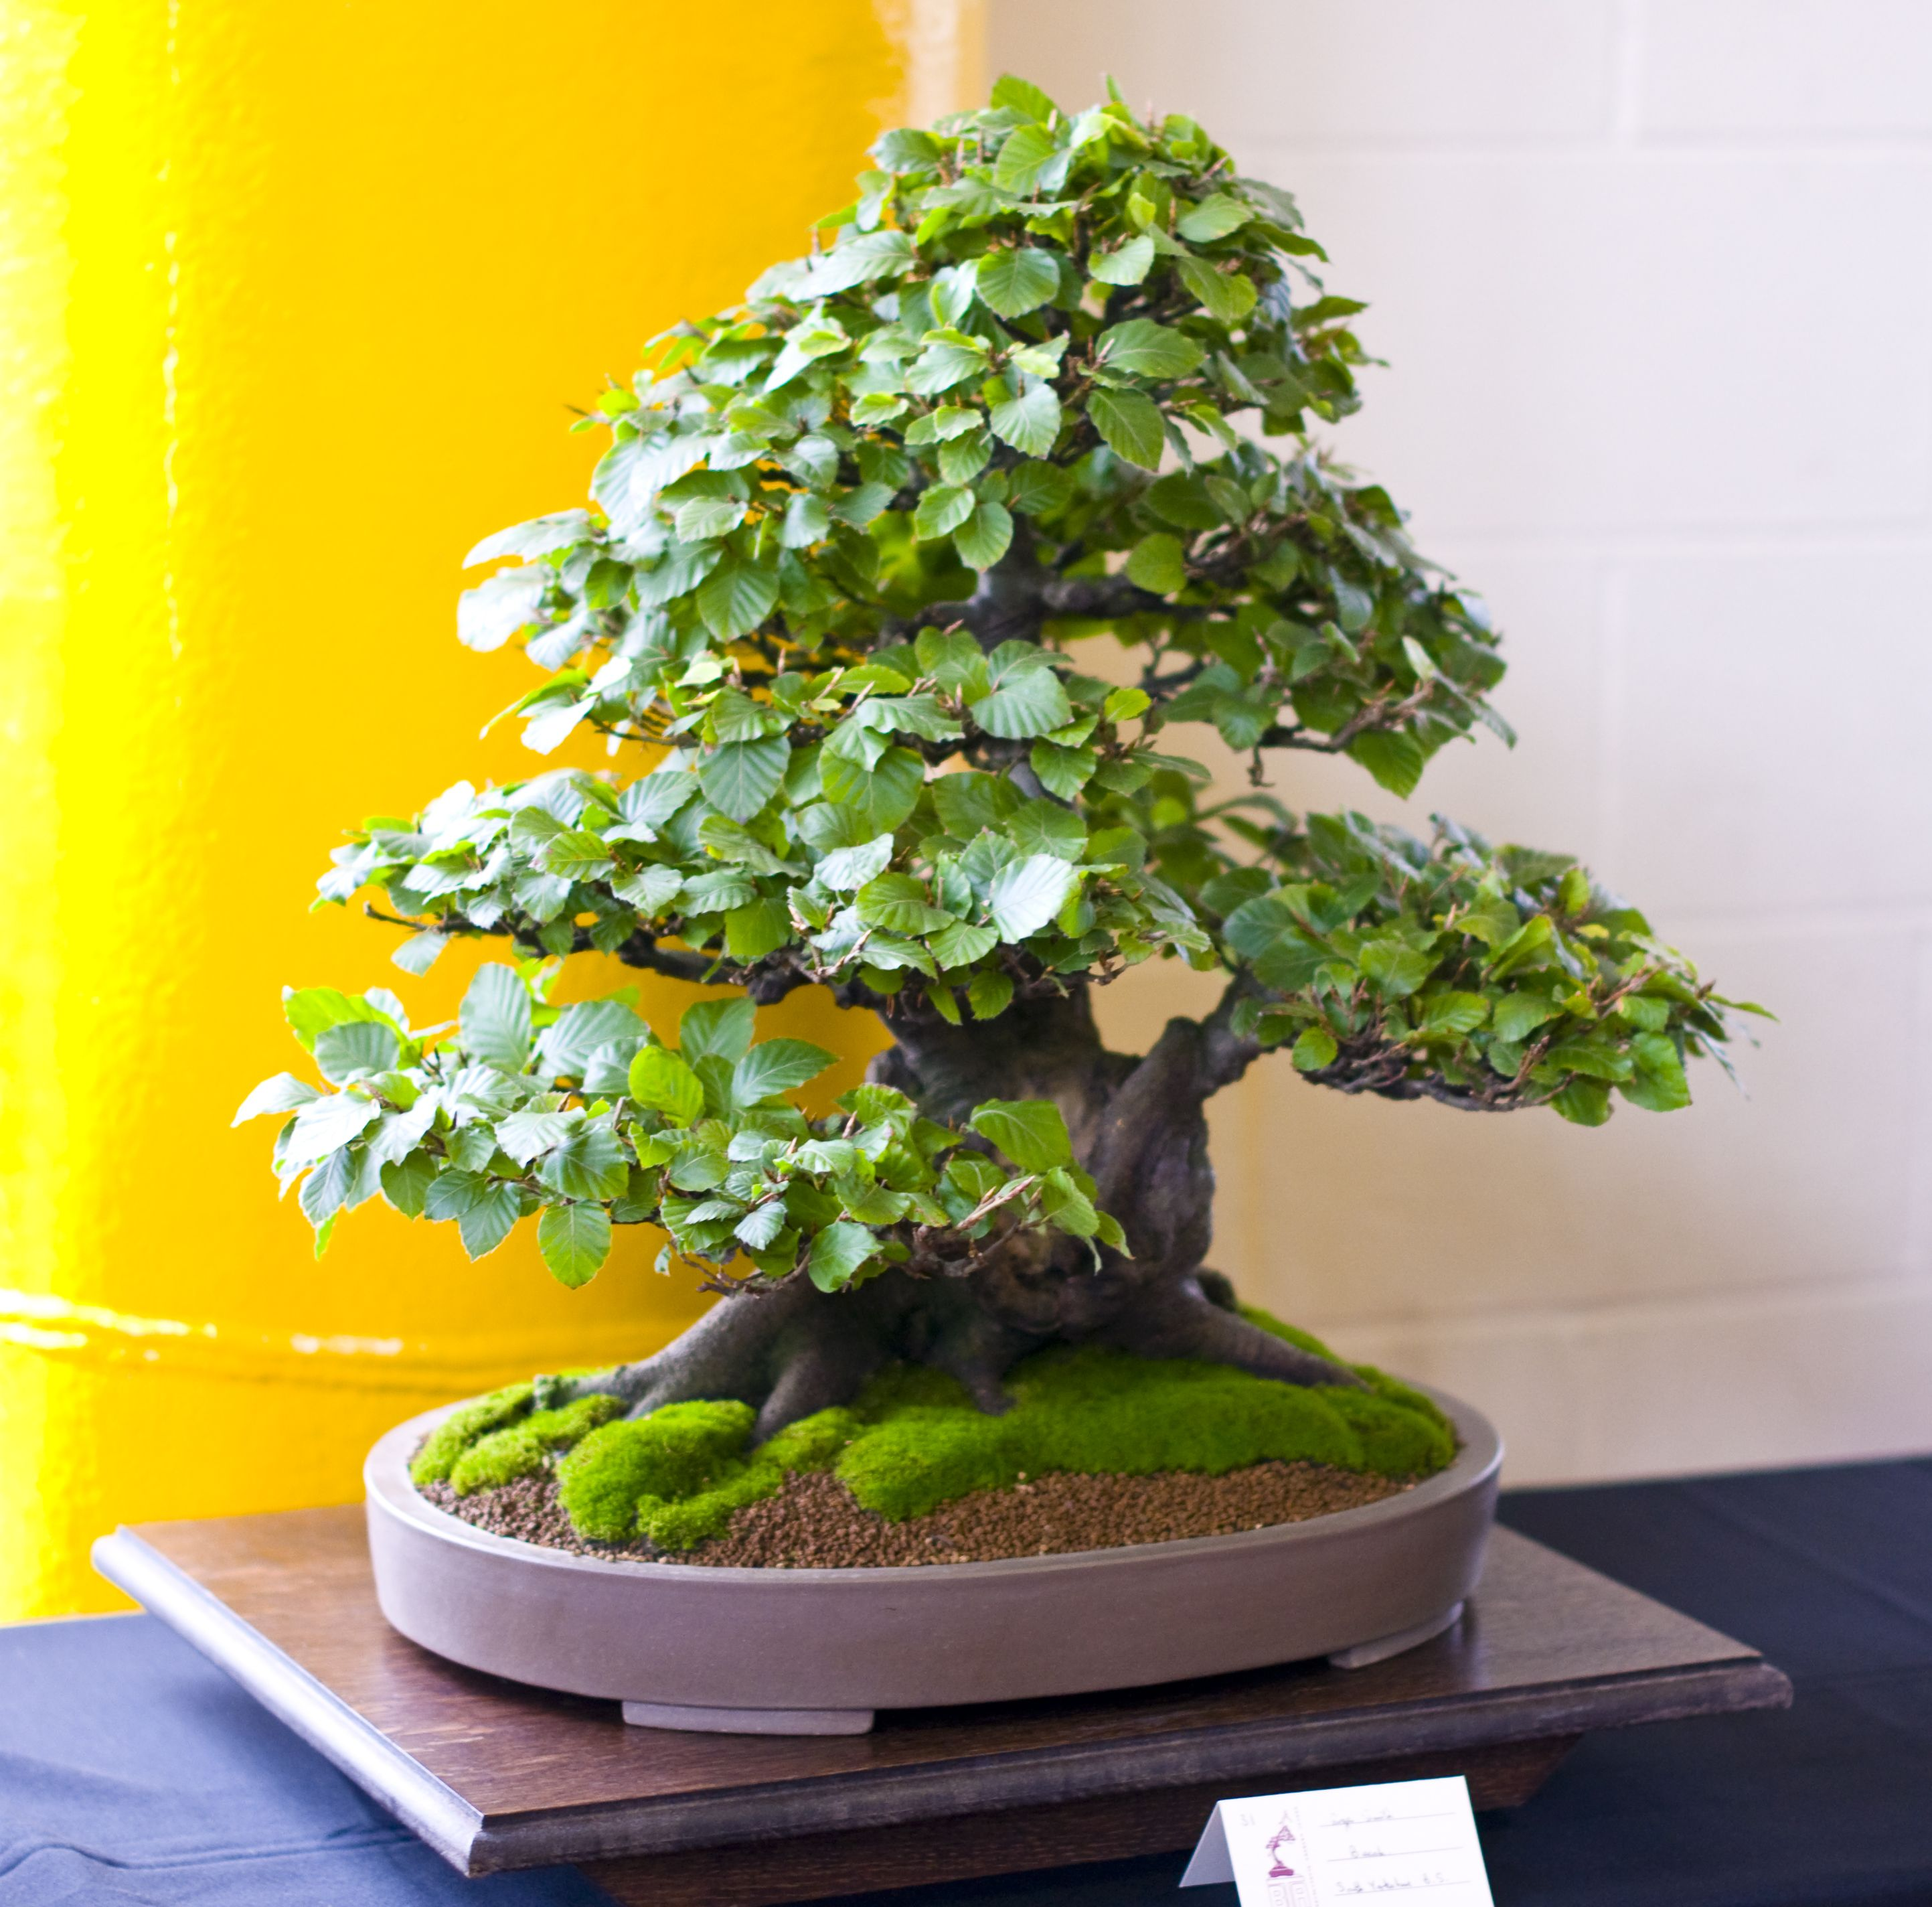 How to take care of a bonsai tree - 17 Best Images About Bonsai On Pinterest Wisteria To Find Out And Empire